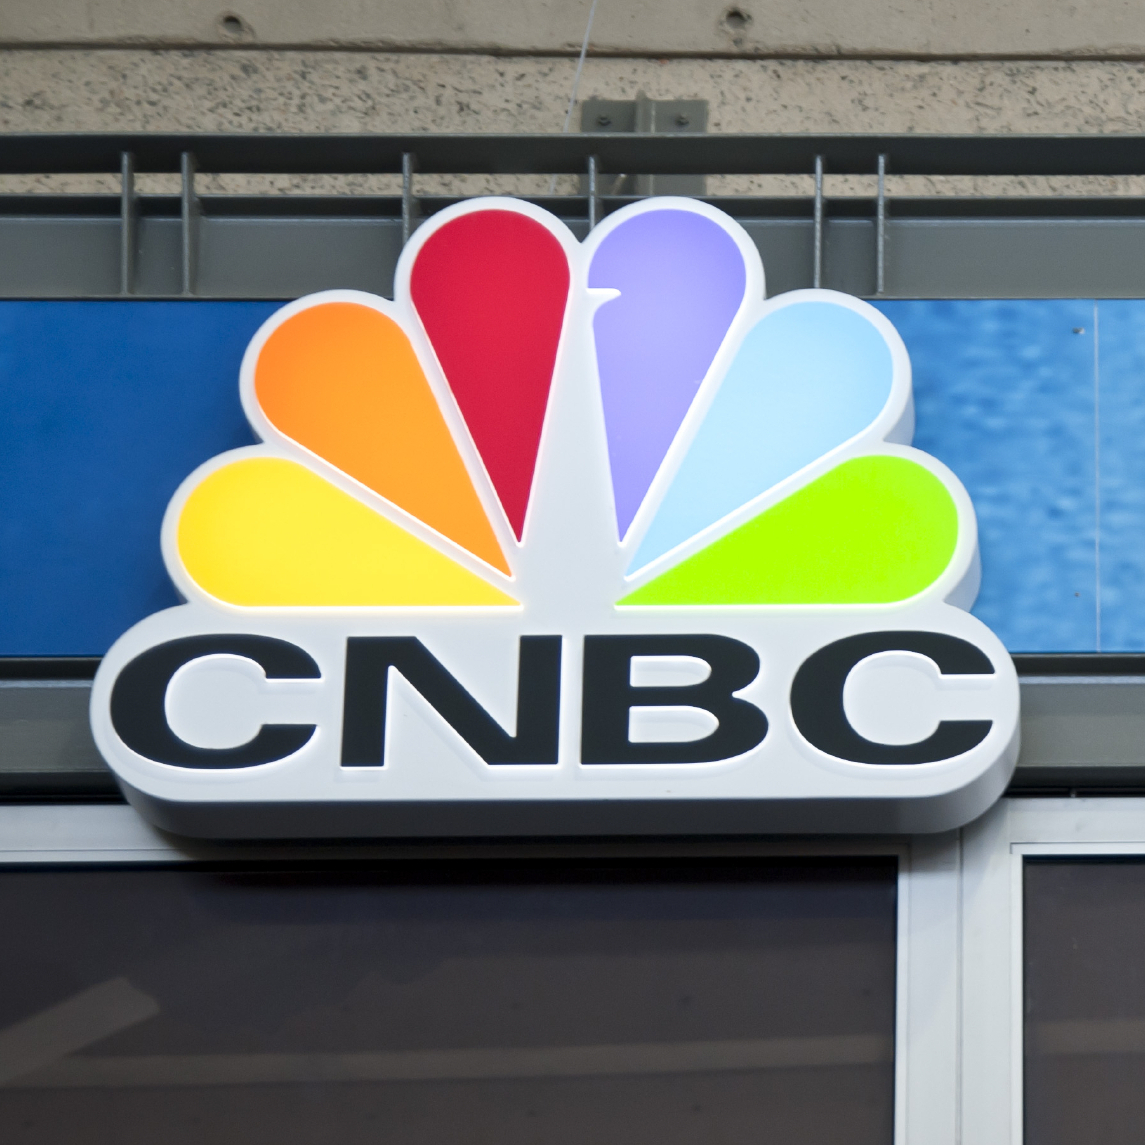 CNBC, the nation's highest-rated financial cable news channel, is telling guests they cannot appear on rival channels amid breaking news.